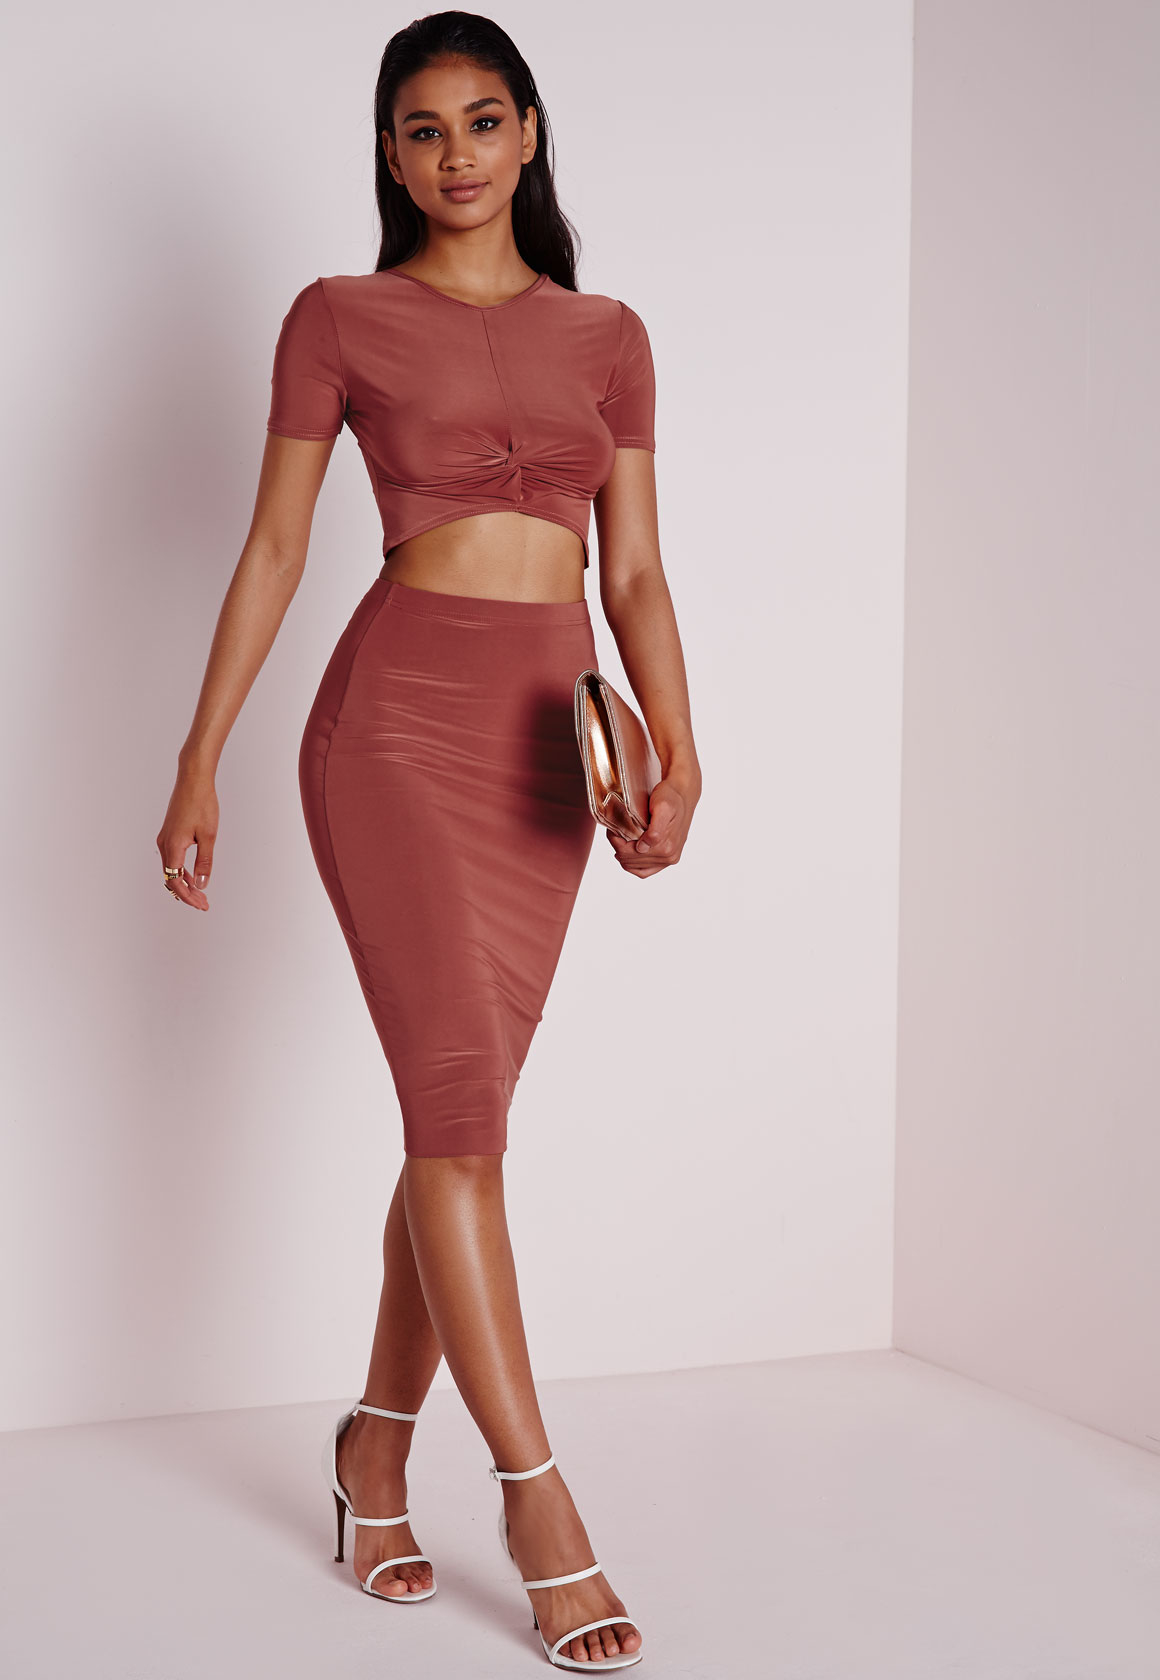 3066235ed8d3e9 Lyst - Missguided Knot Front Capped Sleeve Slinky Crop Top ...